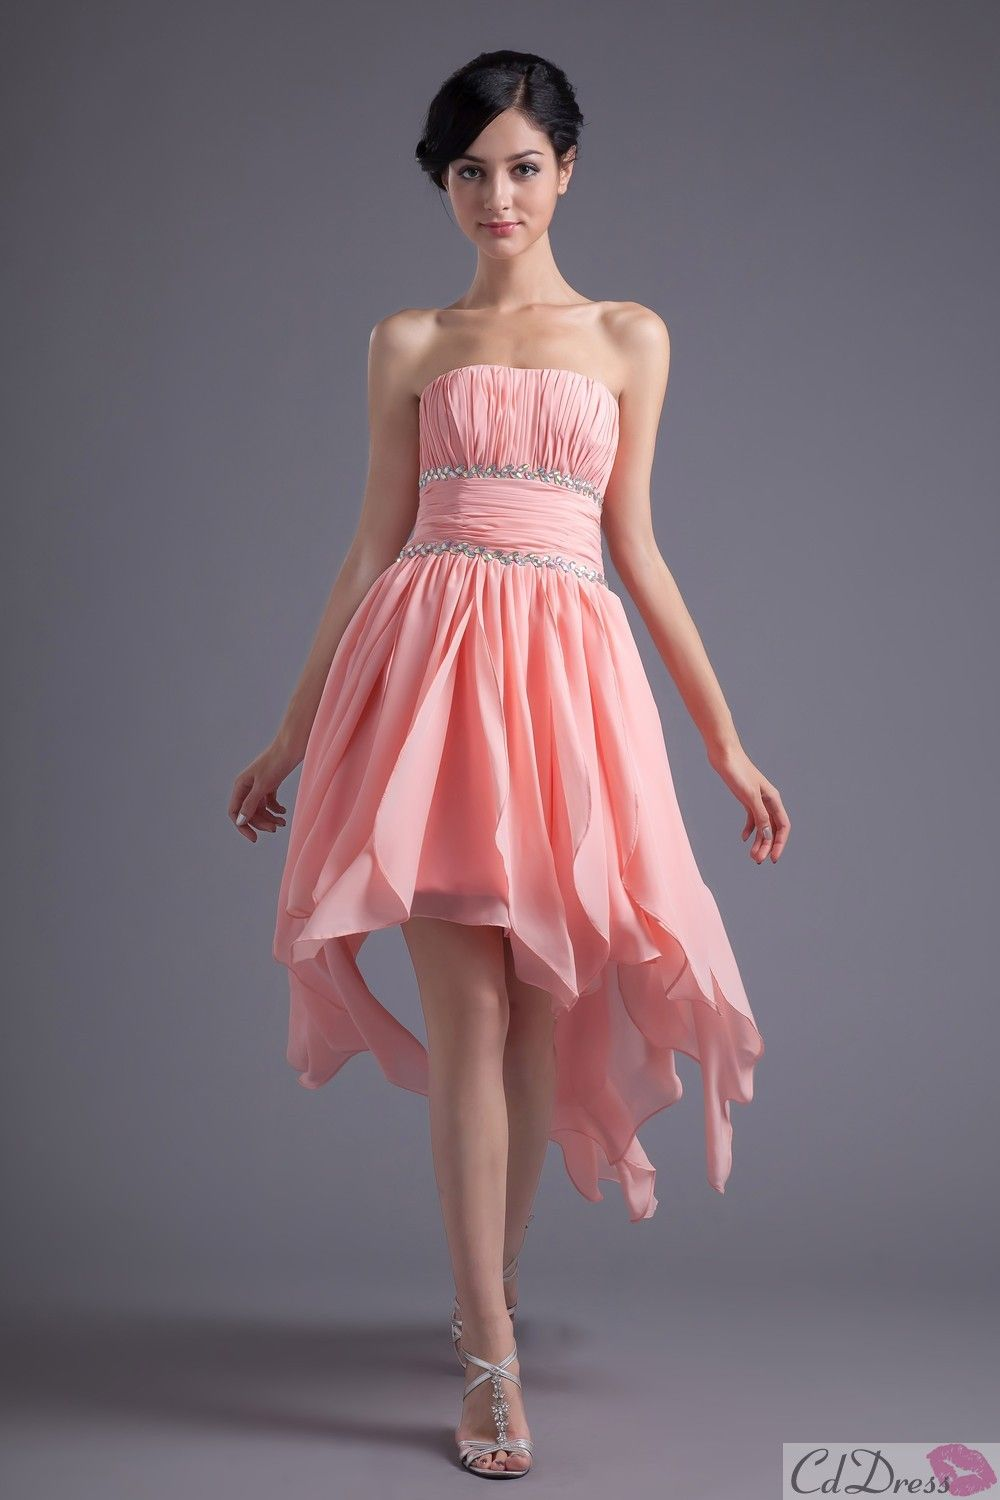 61241cbcde1 Beaded Chiffon Strapless Short Prom Dress cd dresses  101